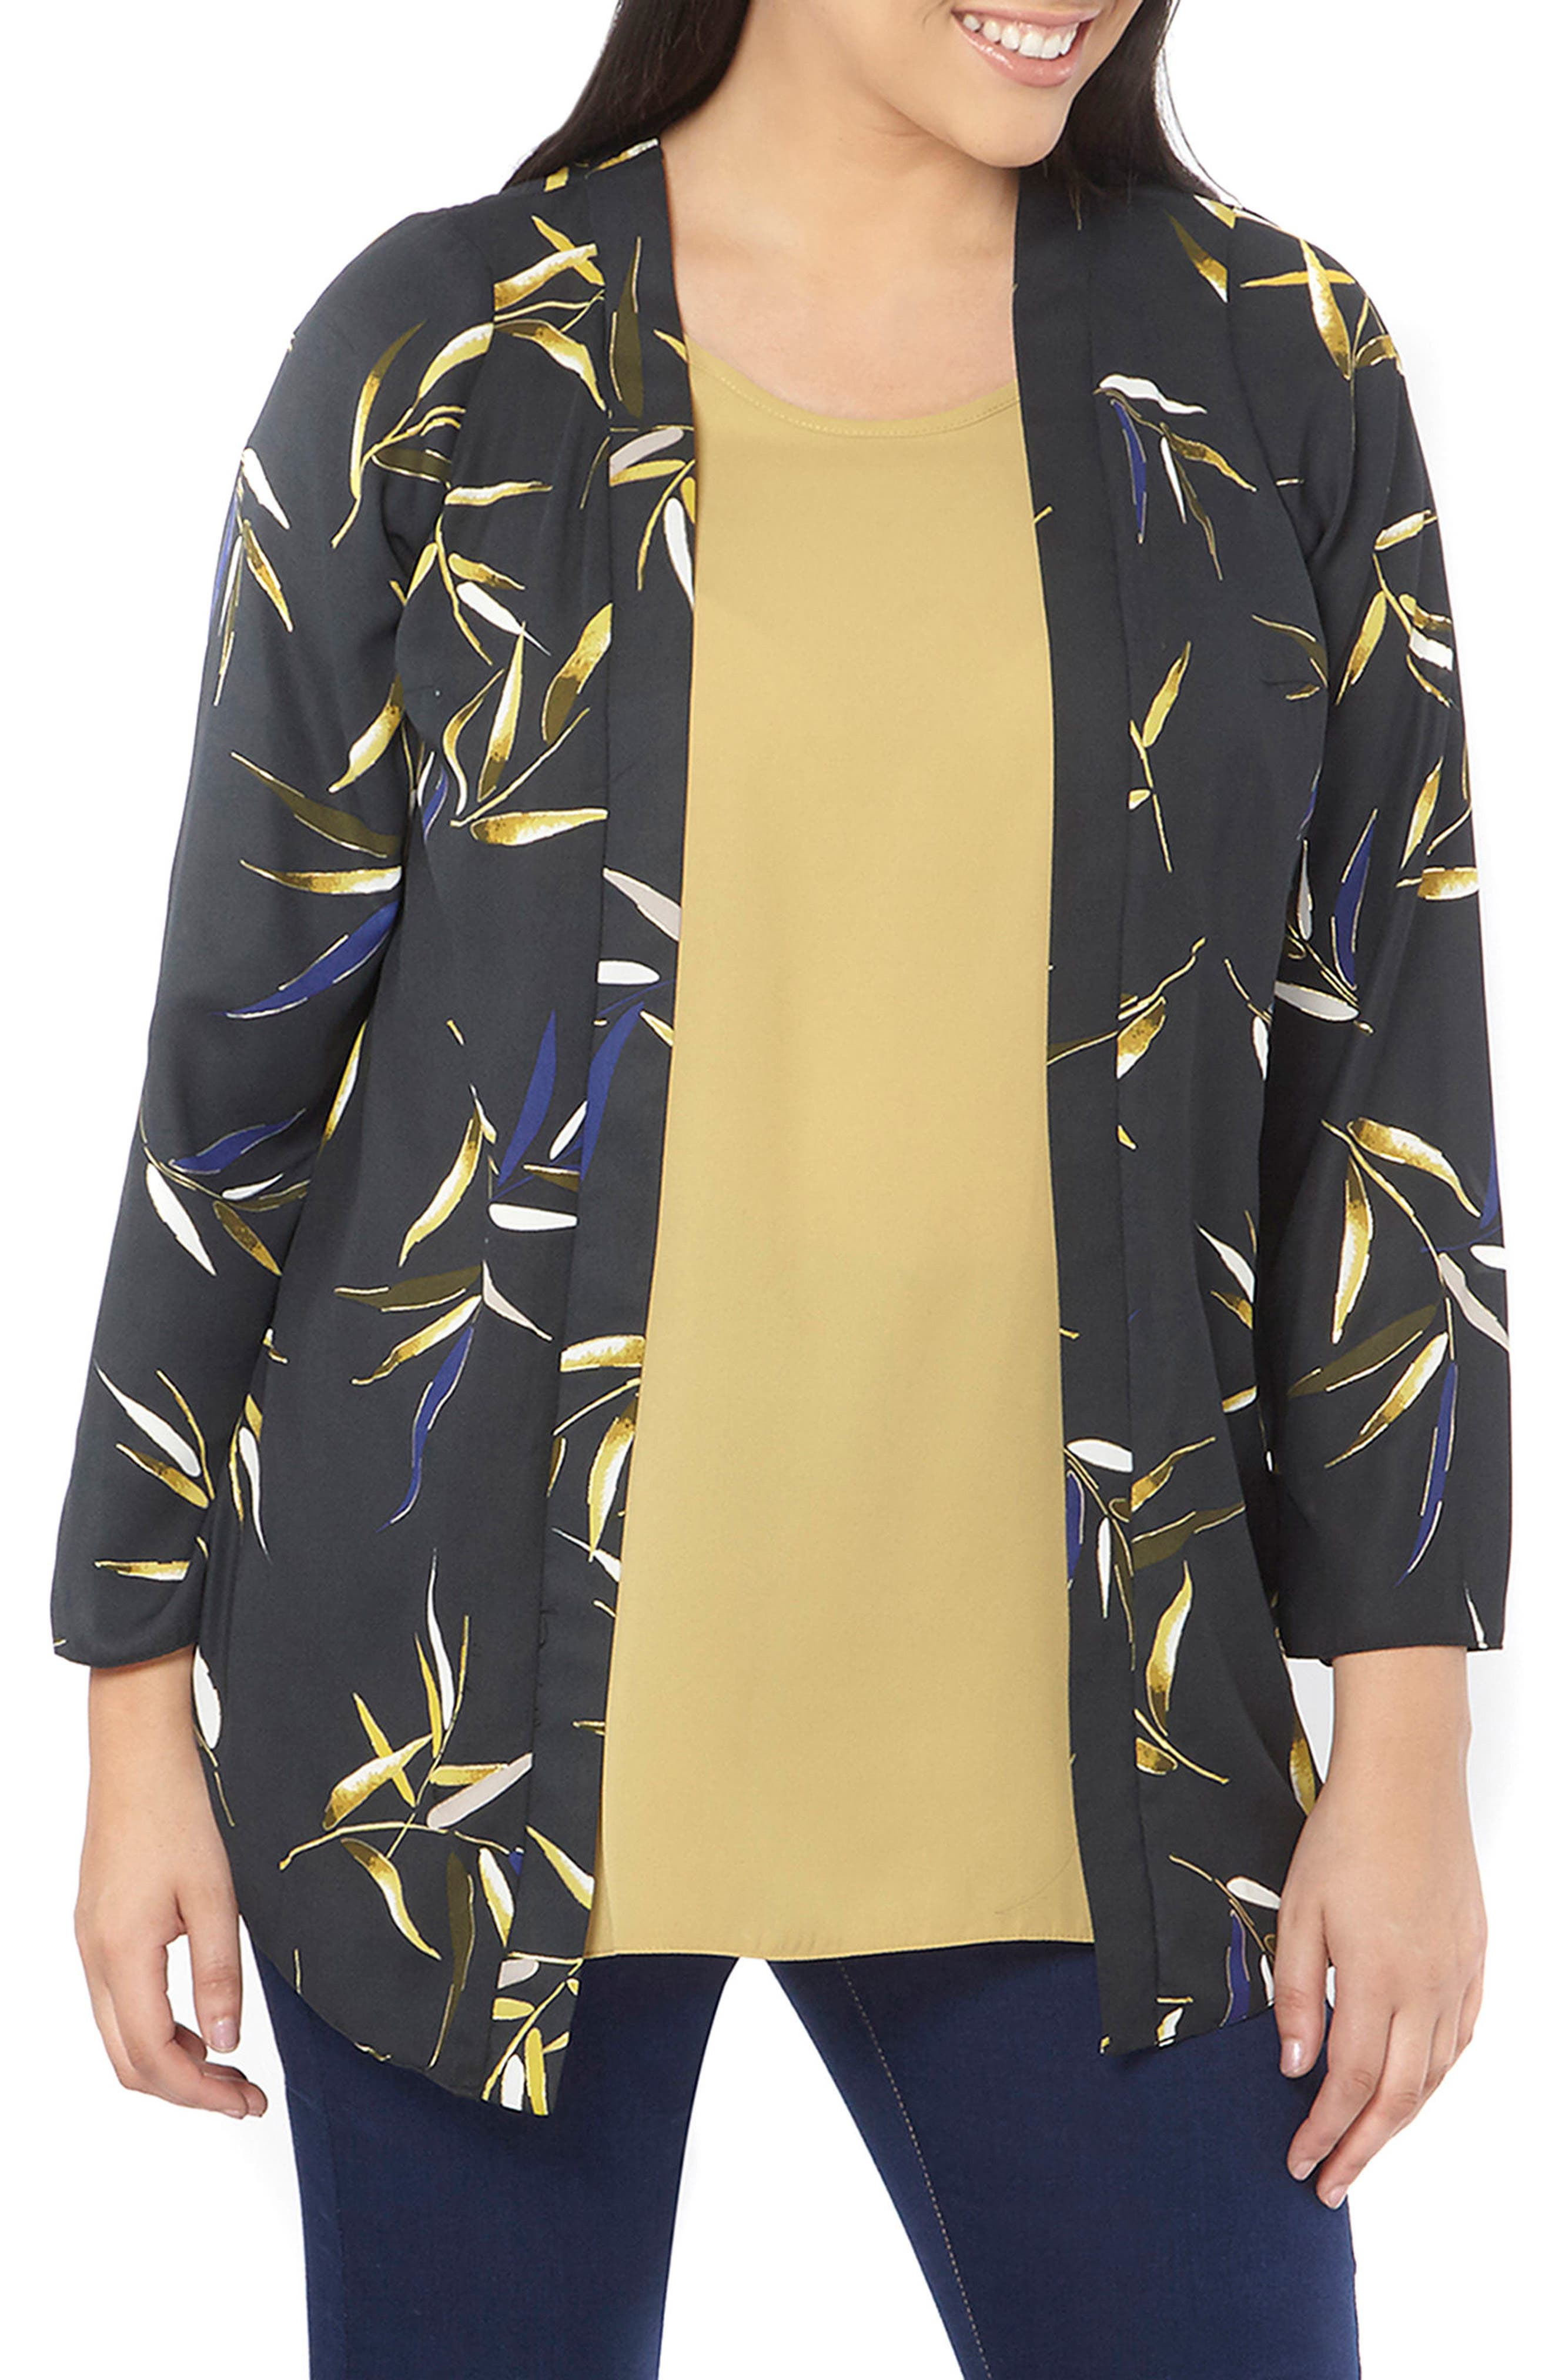 Main Image - Evans Foiled Leaf Print Kimono Jacket (Plus Size)